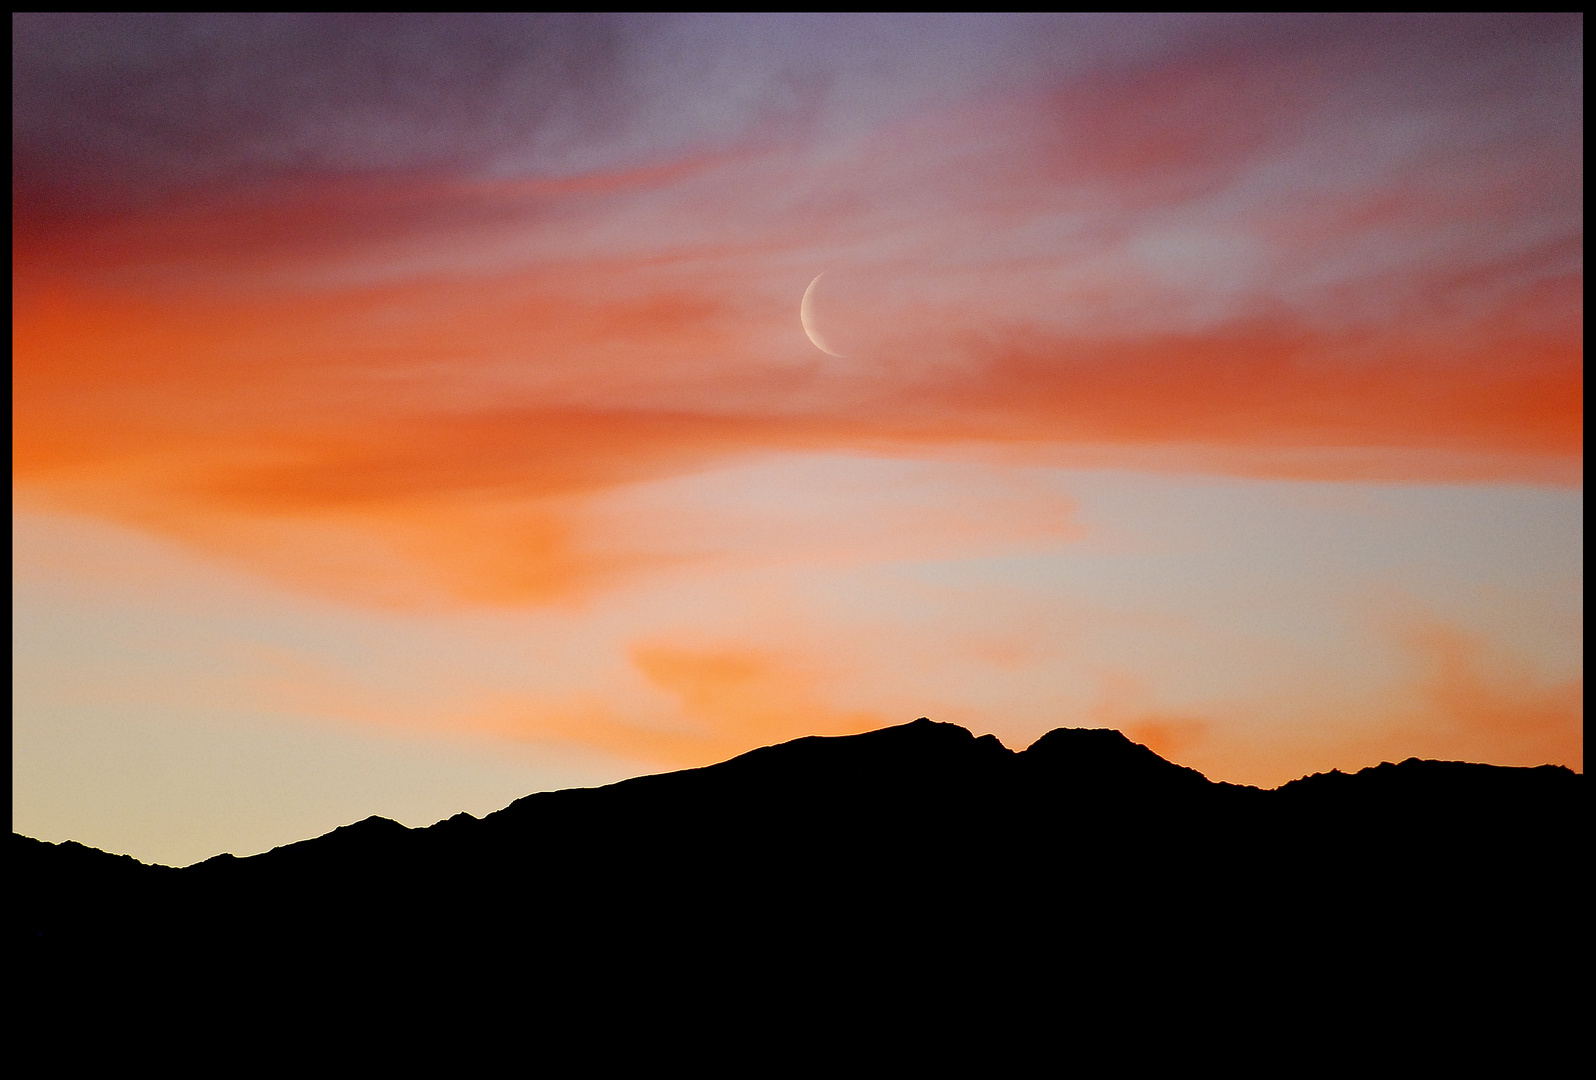 moon in sunset